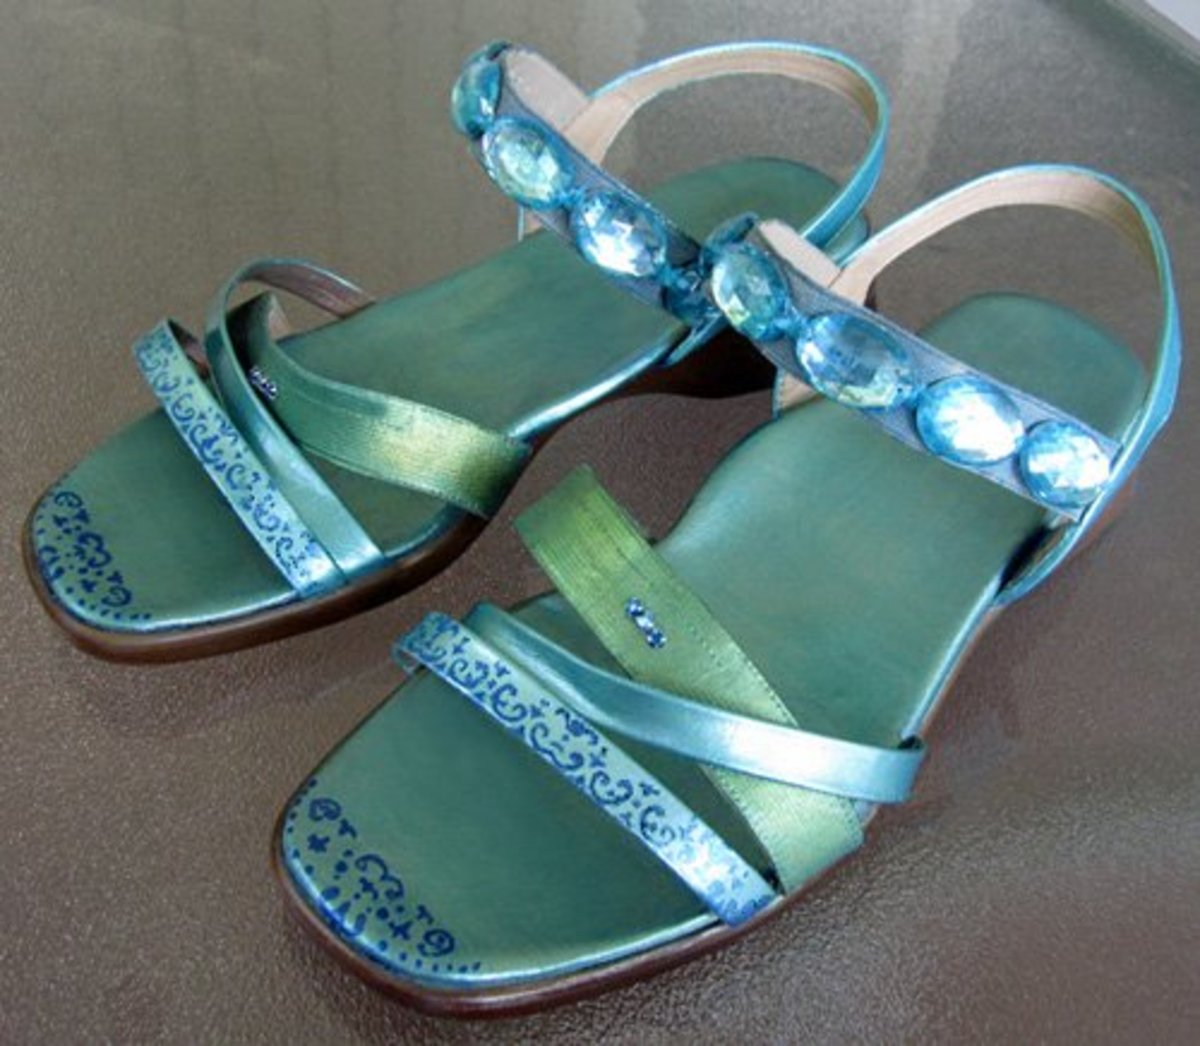 Ta-da! Don't the finished sandals look cool?